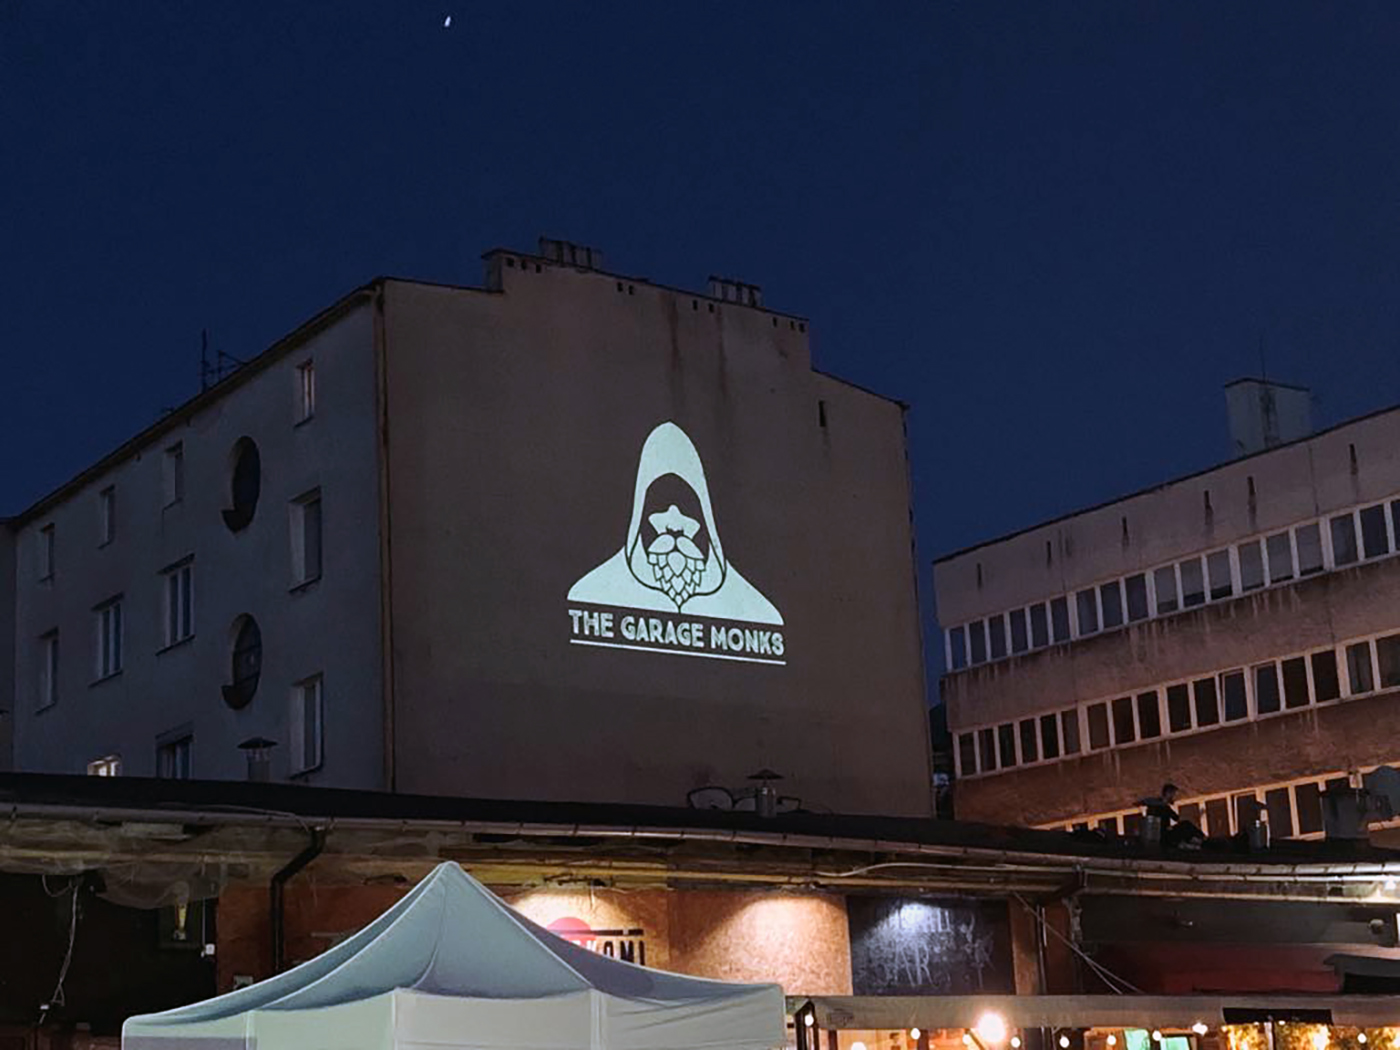 The Garage Monks brewery logo on a building wall by Jakub Cichecki